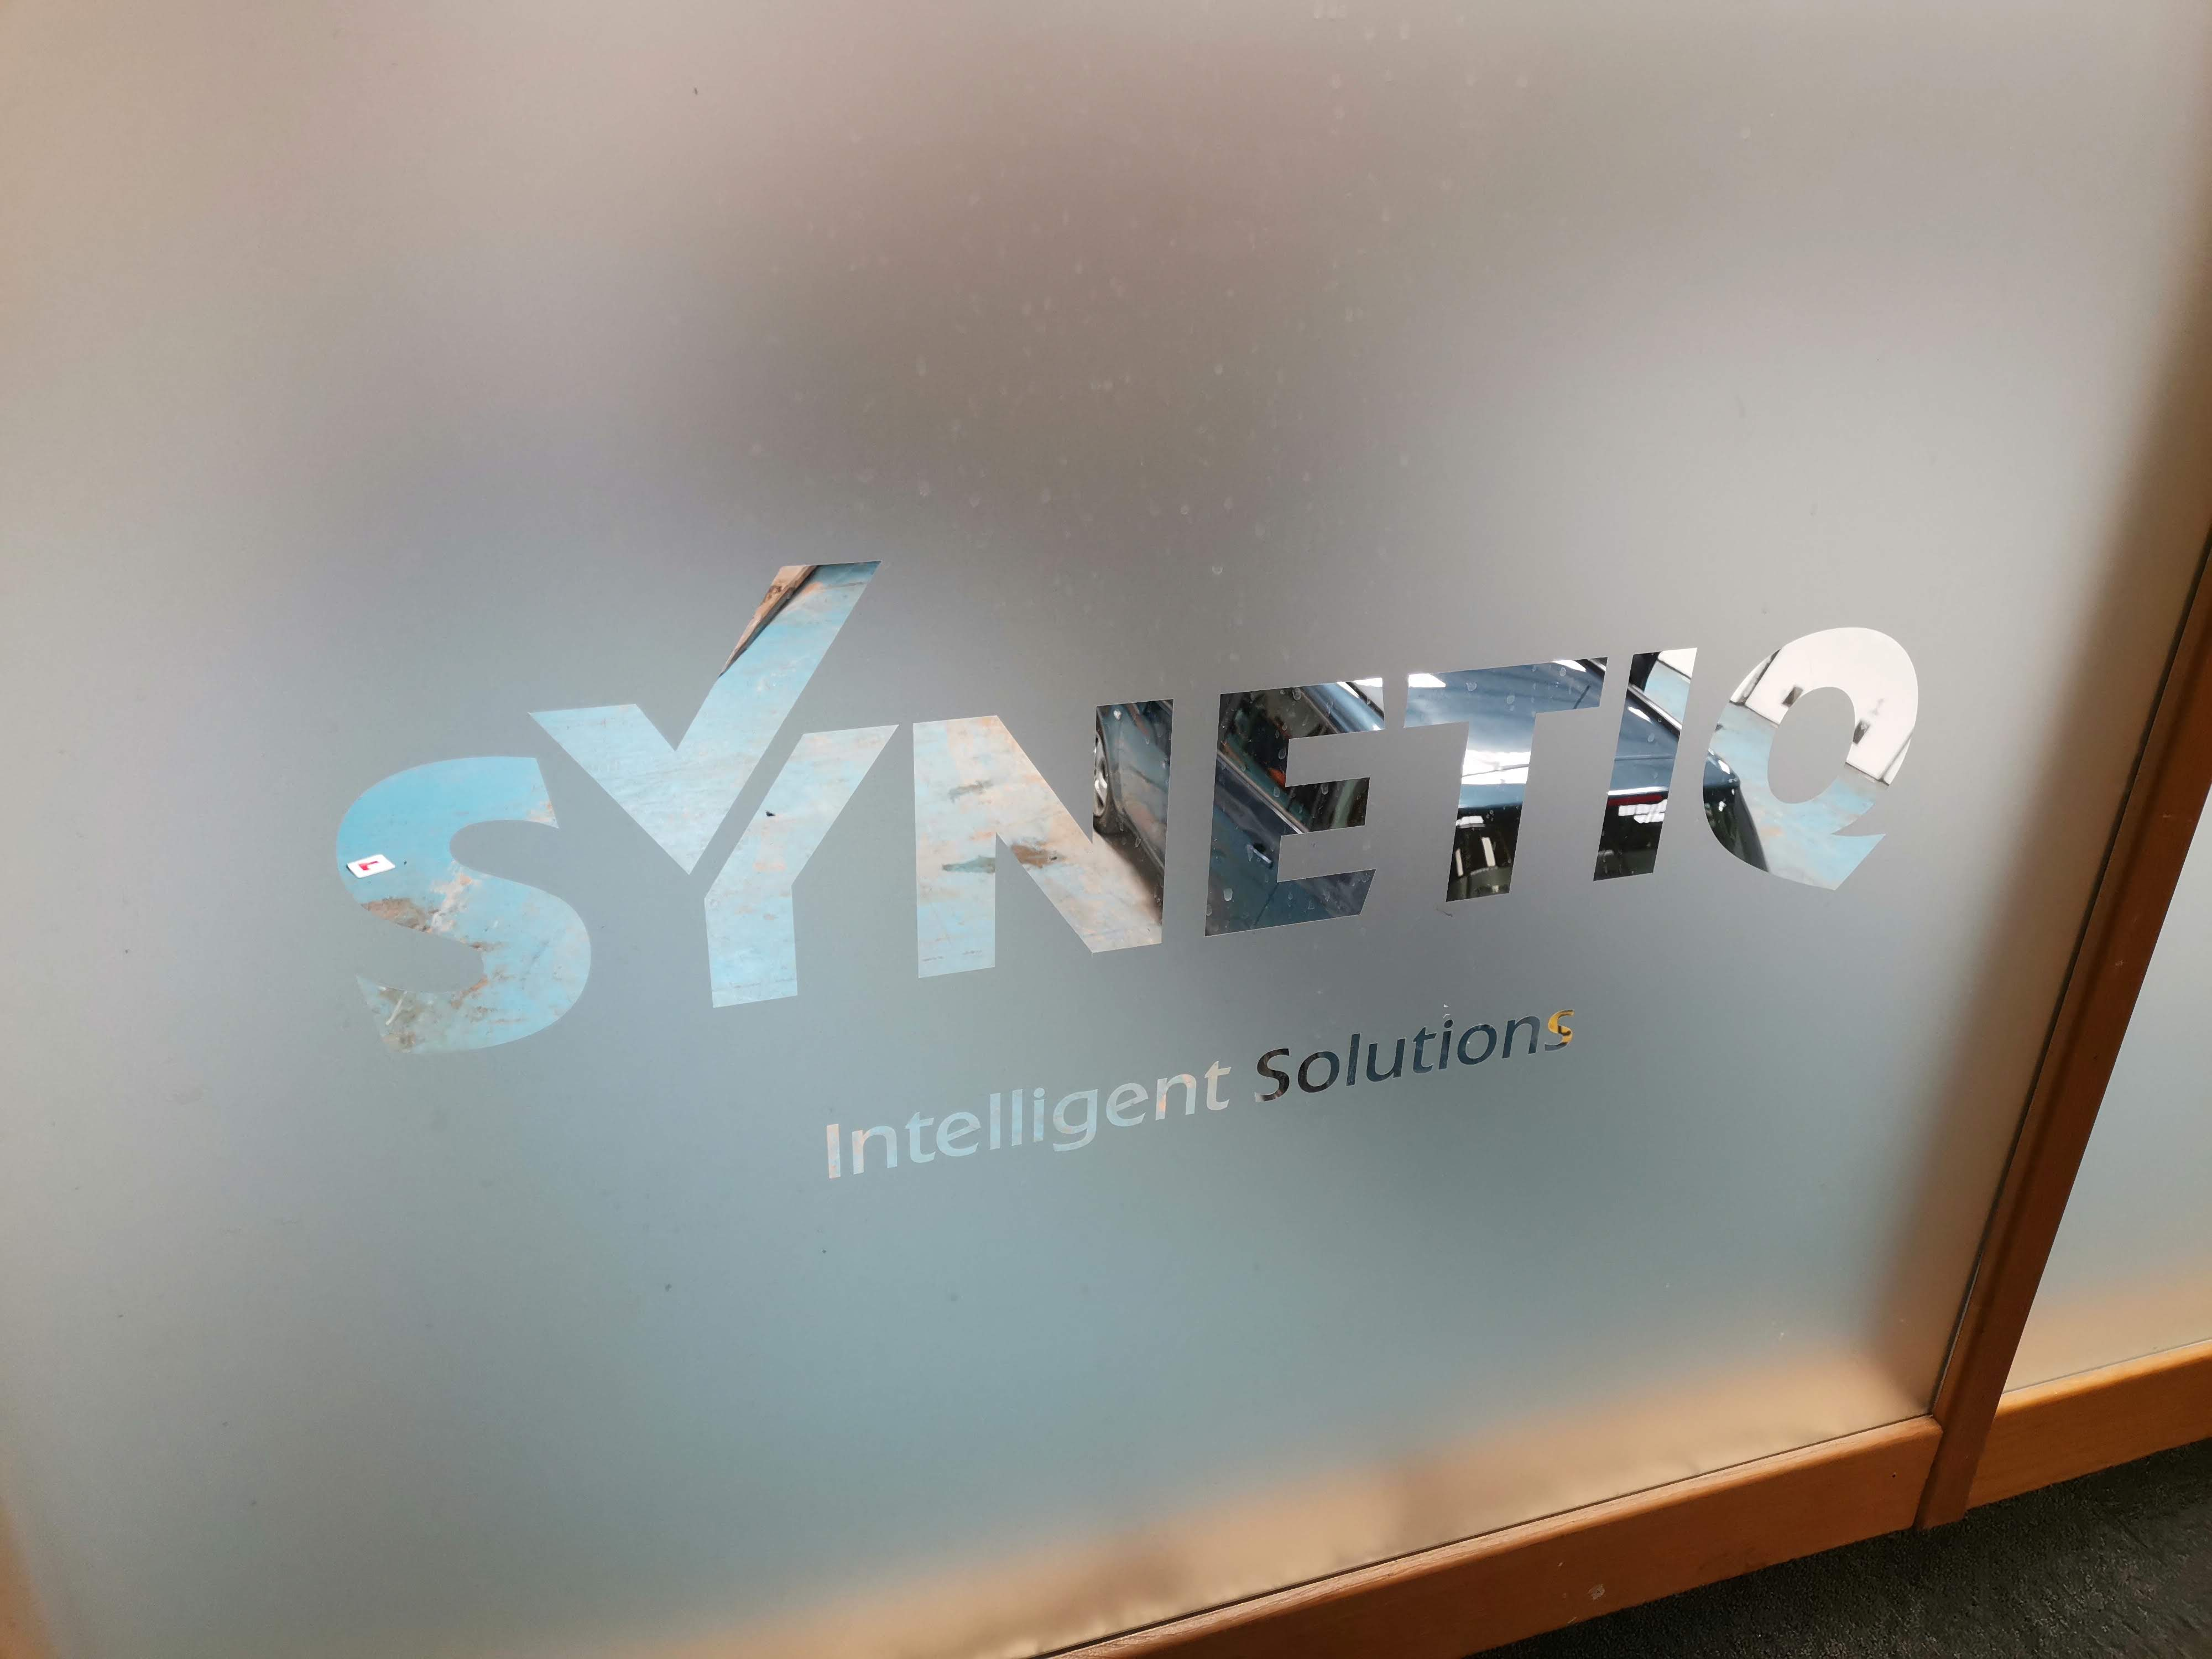 Synetiq Boardroom Window Etch